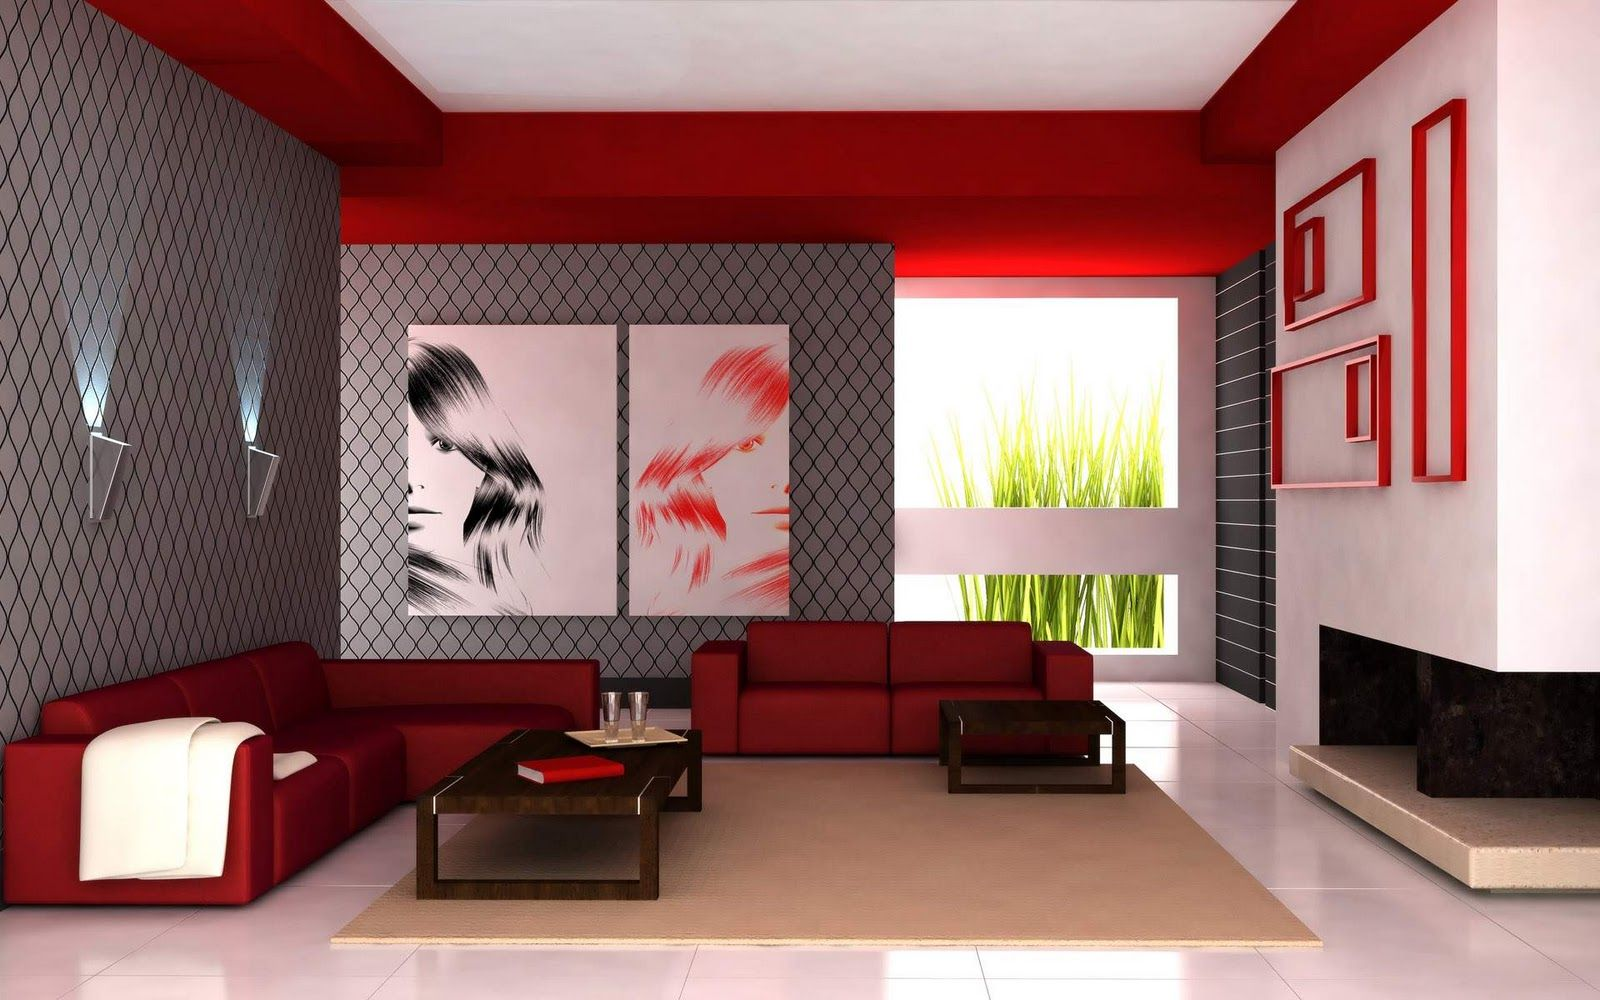 Living Room Color Ideas Google Search Wohnzimmer Design Wohnzimmer Inspiration Wohnzimmer Farbe